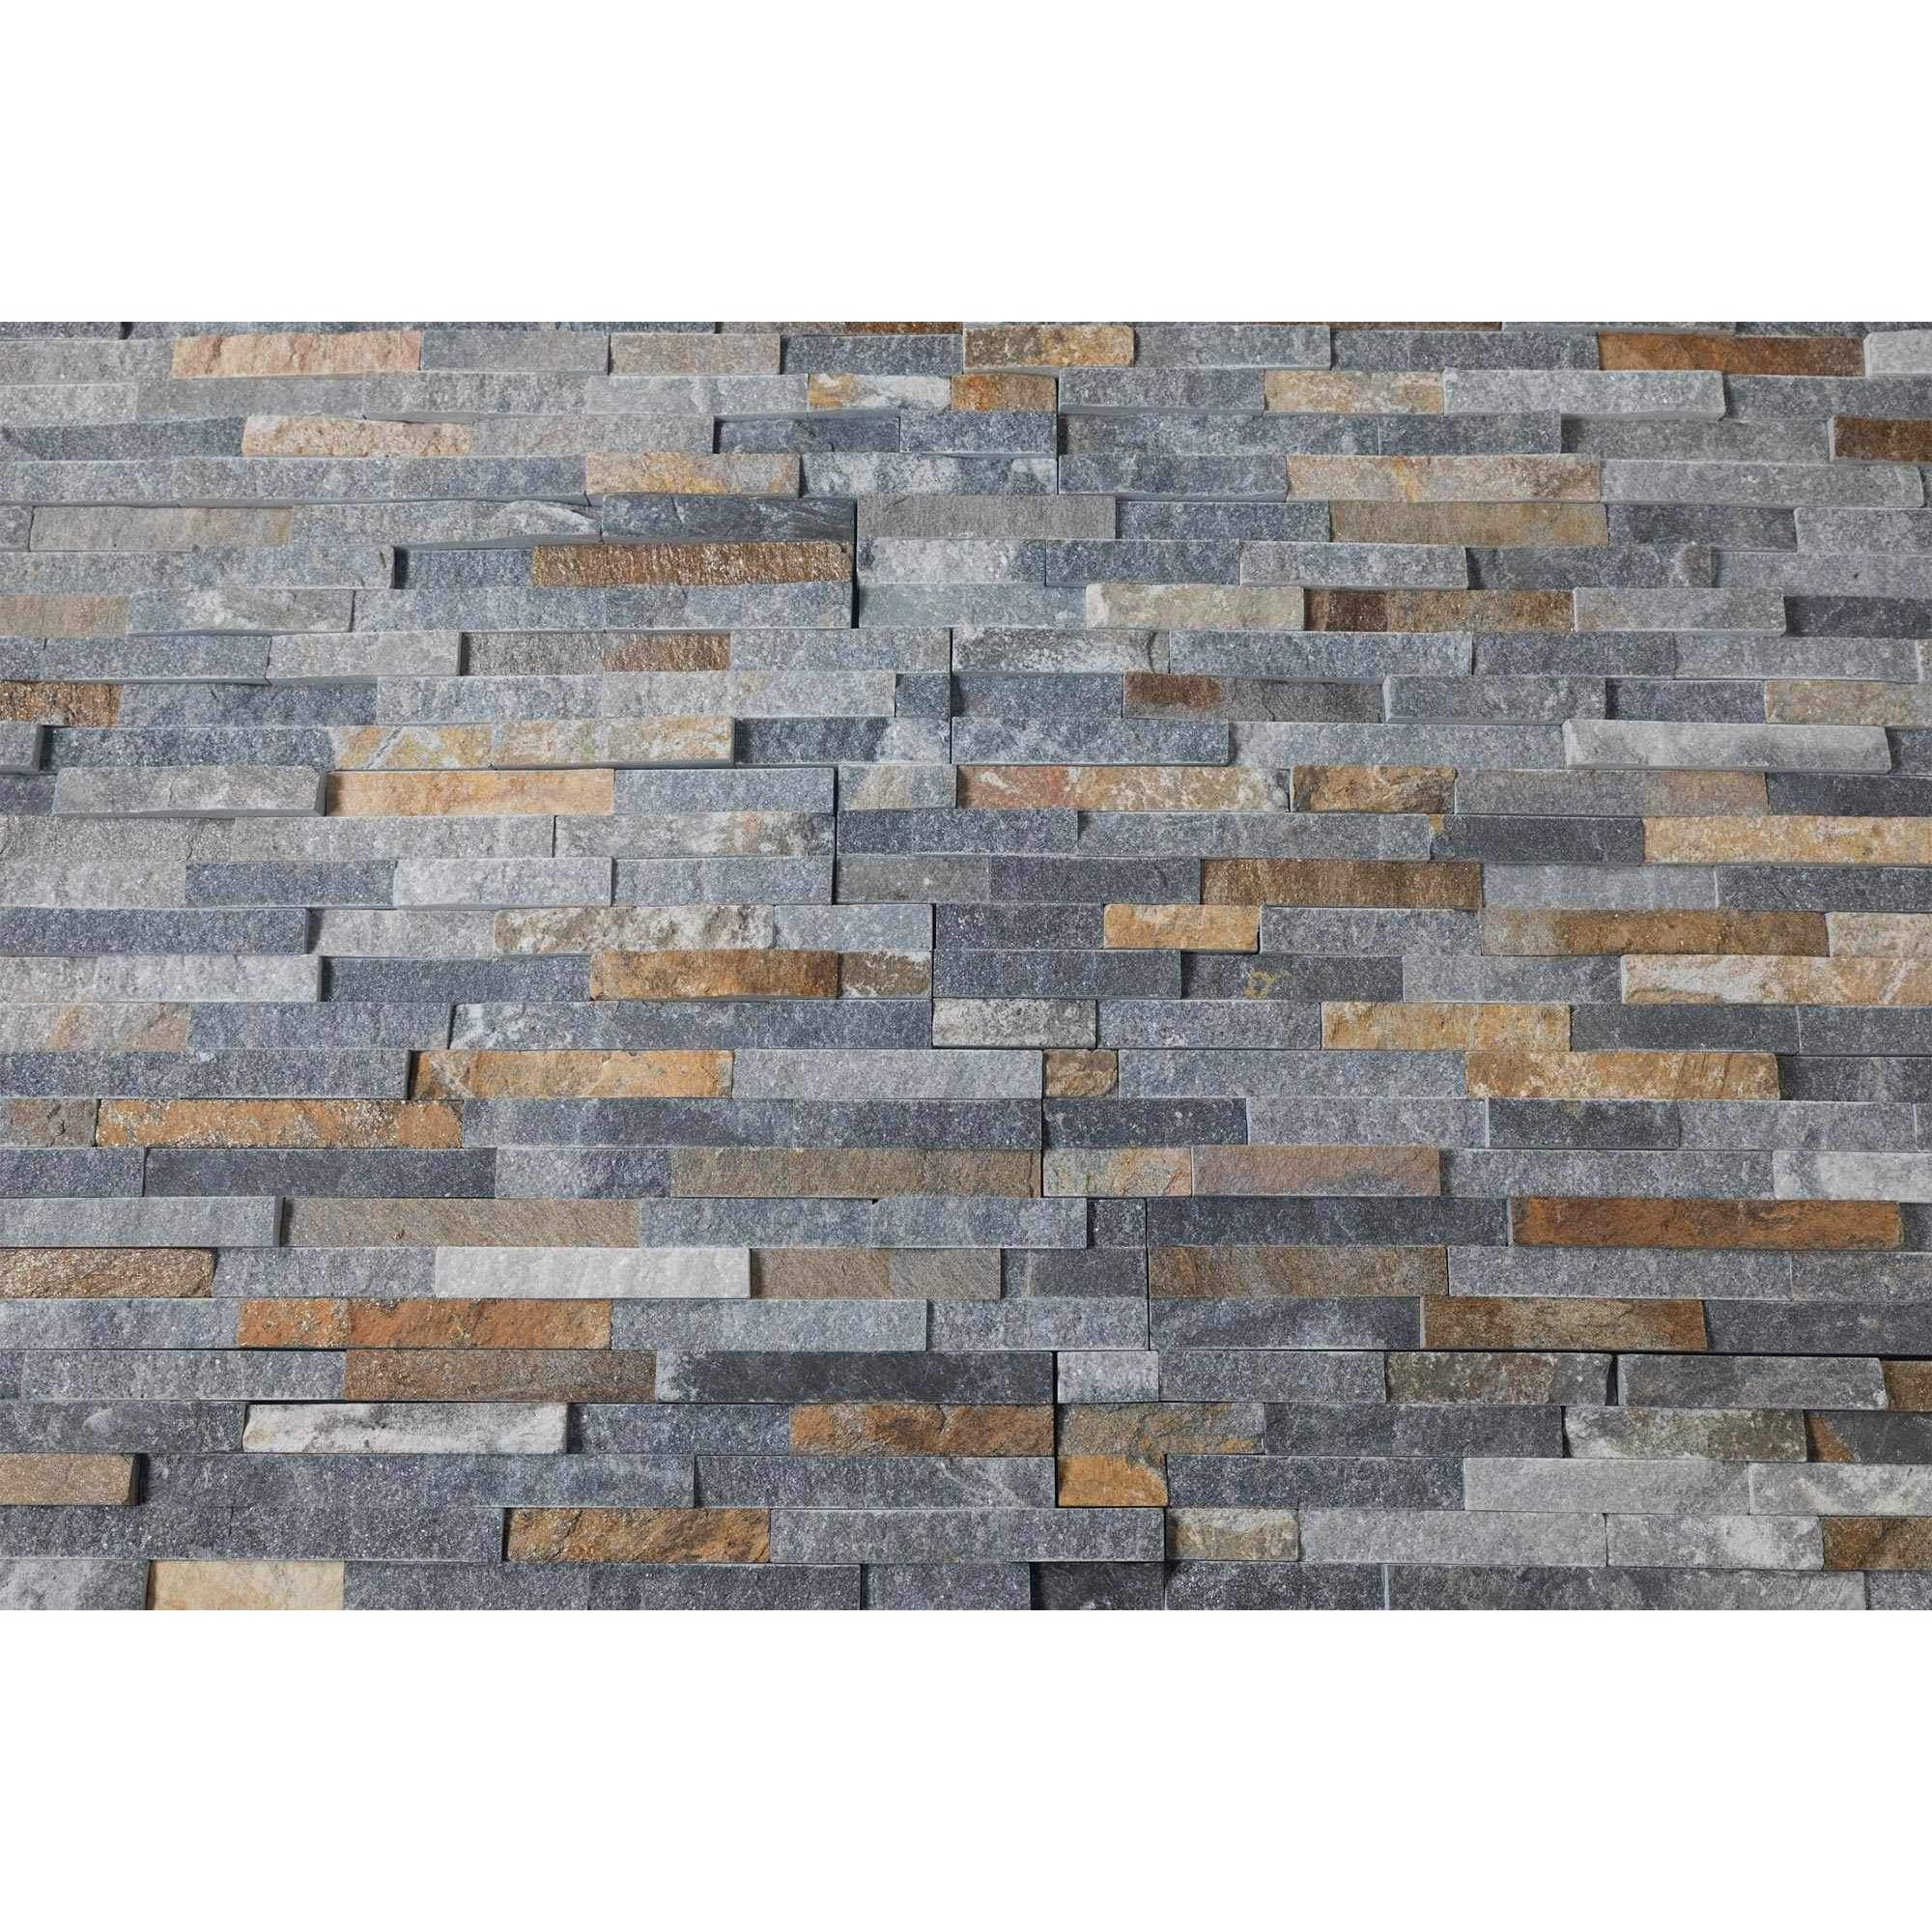 Natural Stacked Stone Feature Wall Cladding Panels - Rusty Black Stackstone